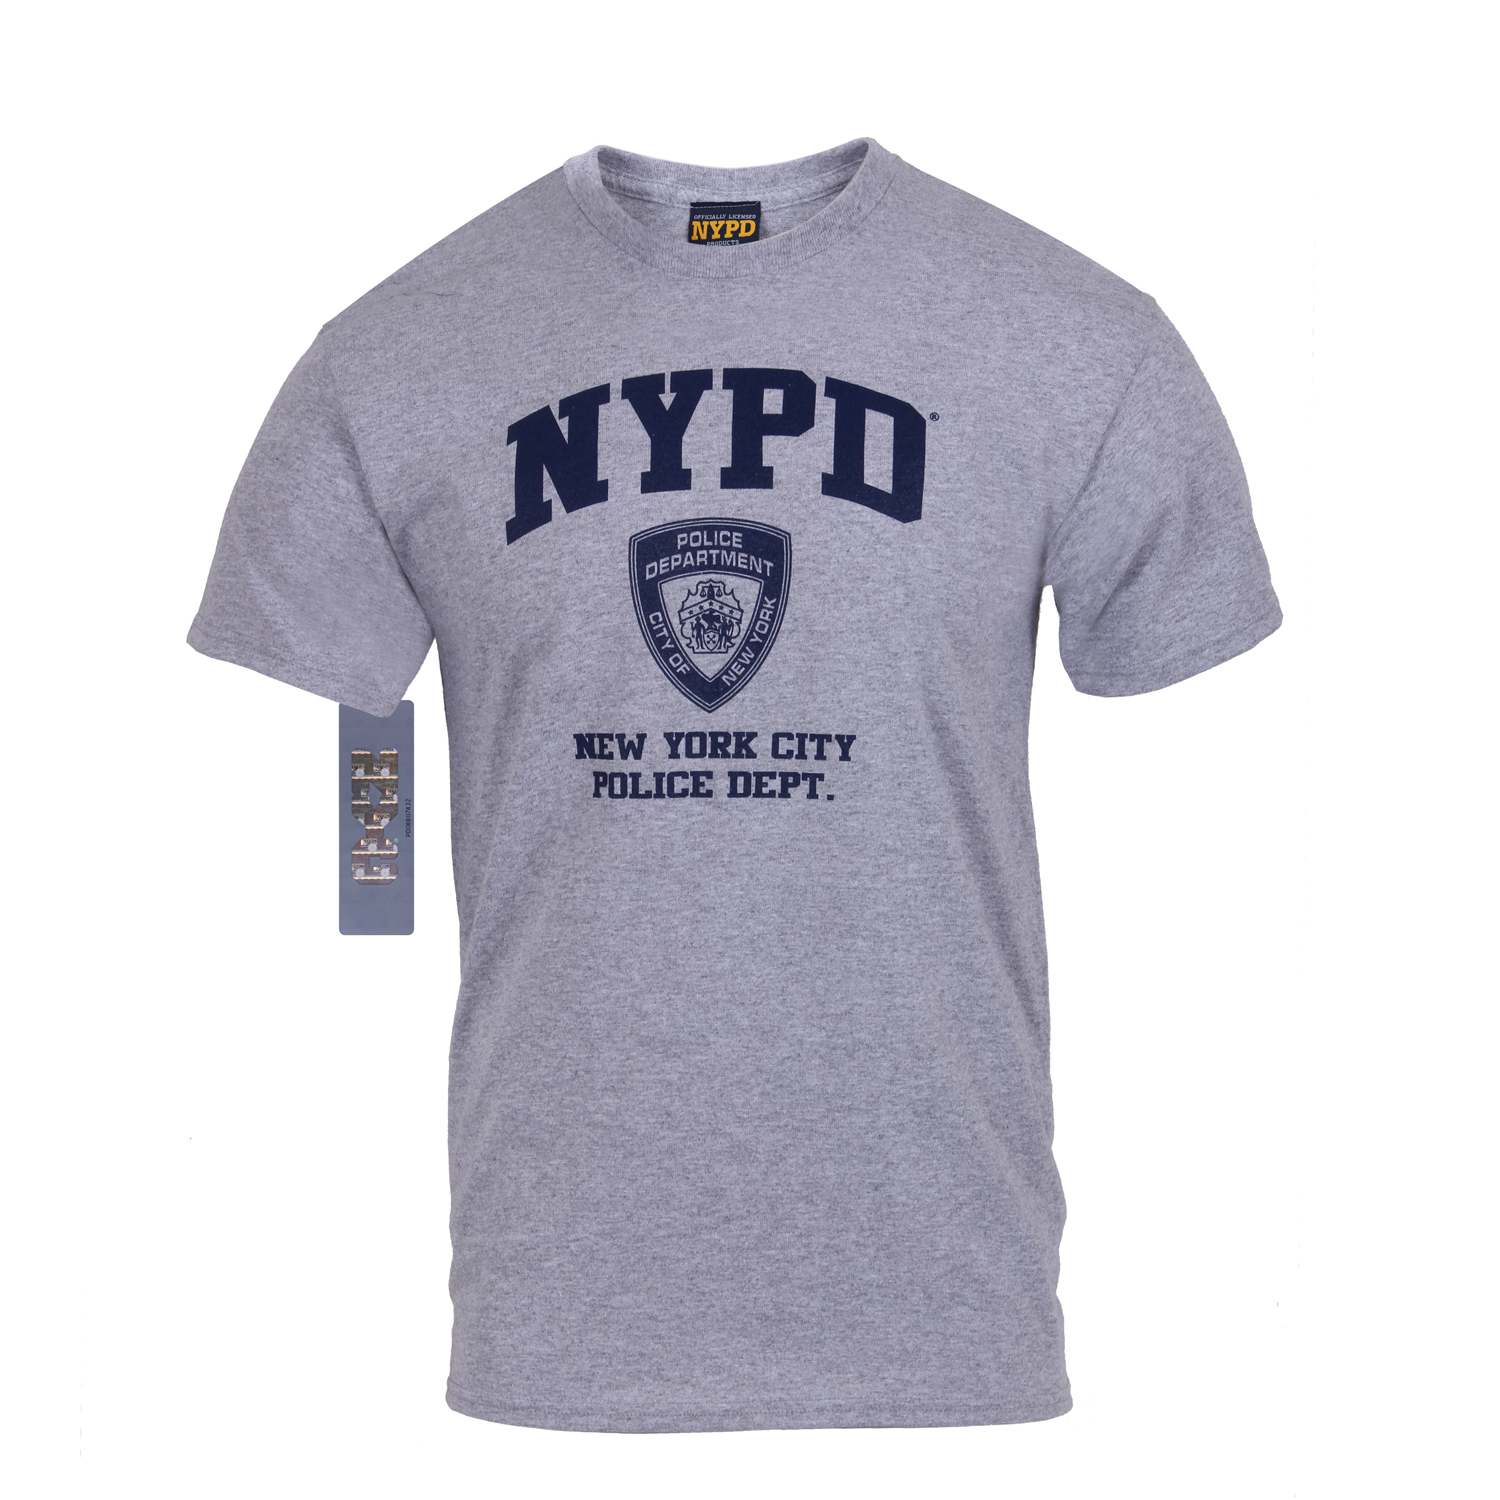 66577c742 Rothco,Officially Licensed,NYPD,Physical Training,T-shirt,police nypd